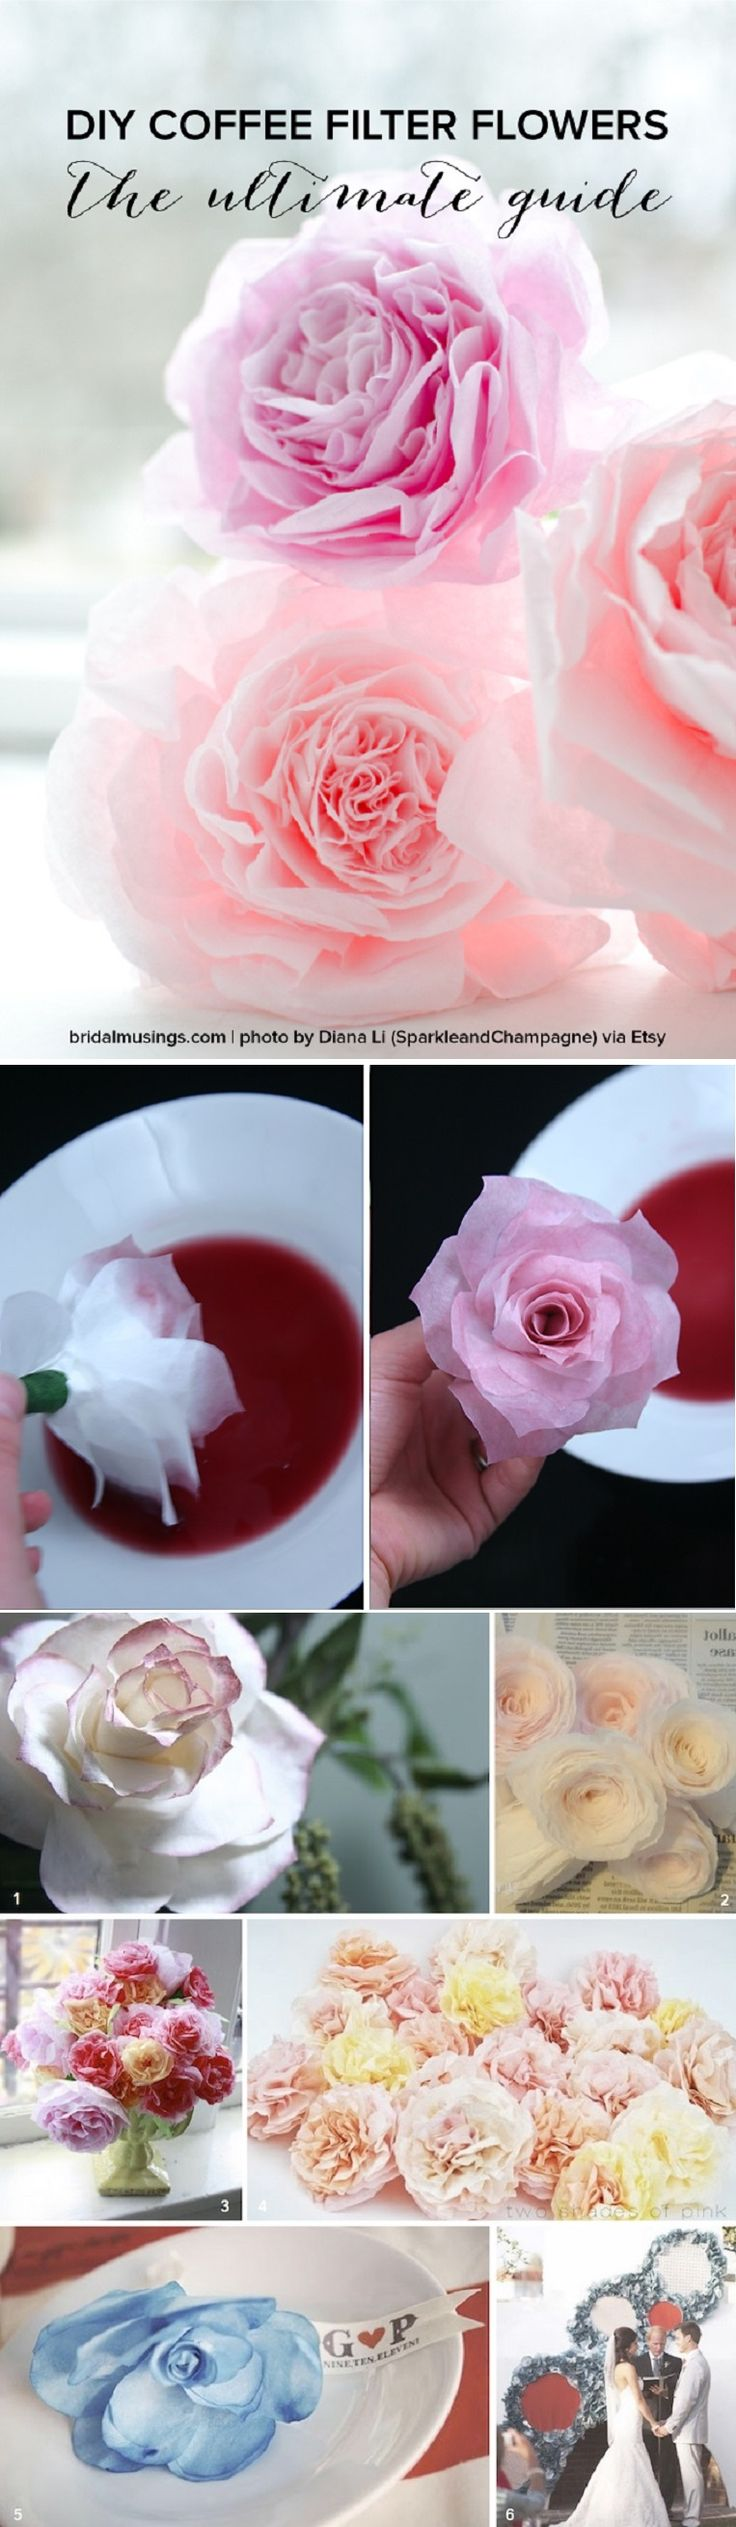 DIY-Coffee-Filter-Flowers-Guide.jpg 763×2,620 pixels